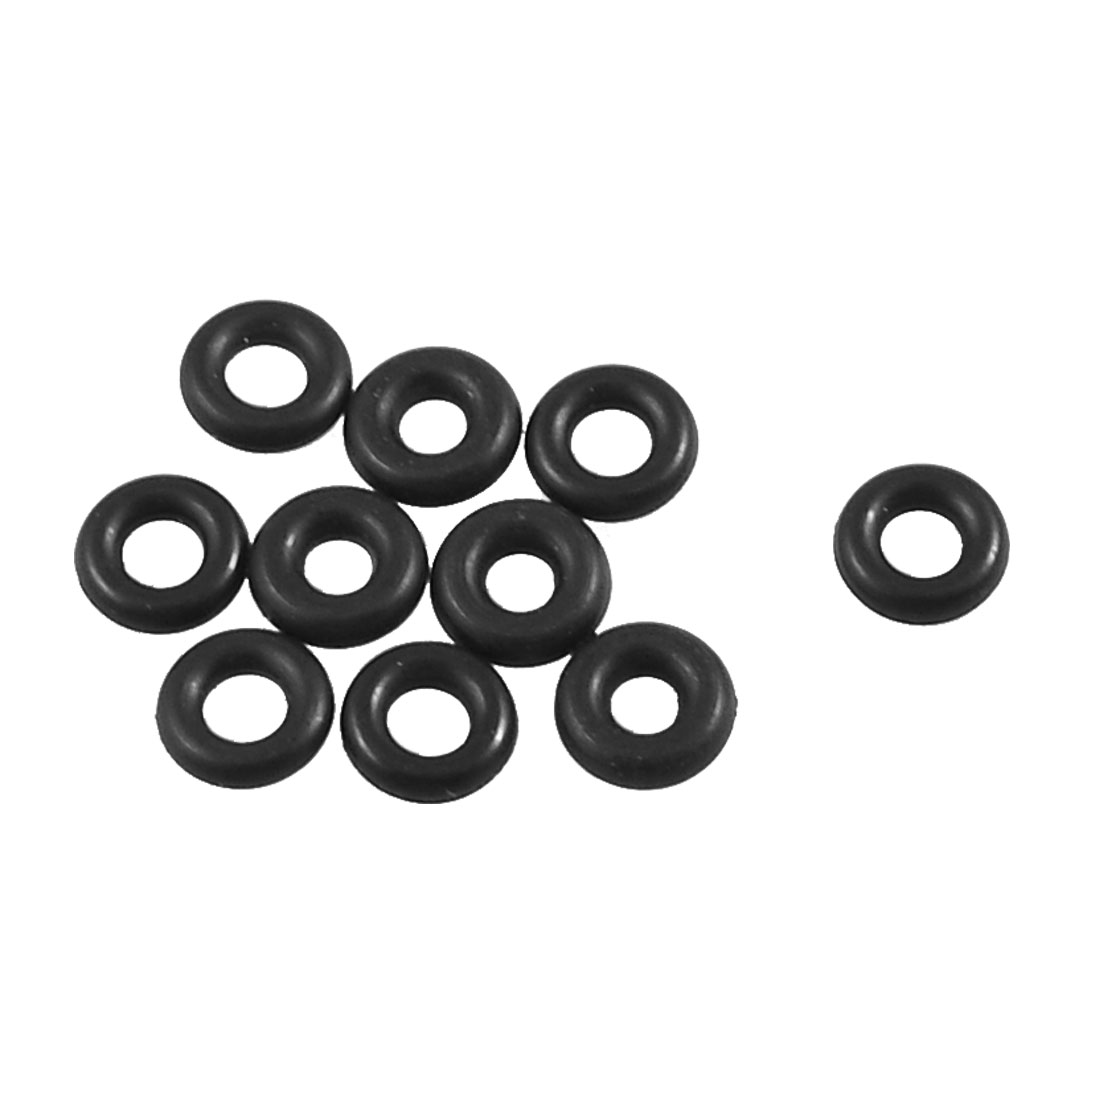 10 Pcs 11mm x 5mm x 3.1mm Mechanical Rubber O Ring Oil Seal Gaskets Black